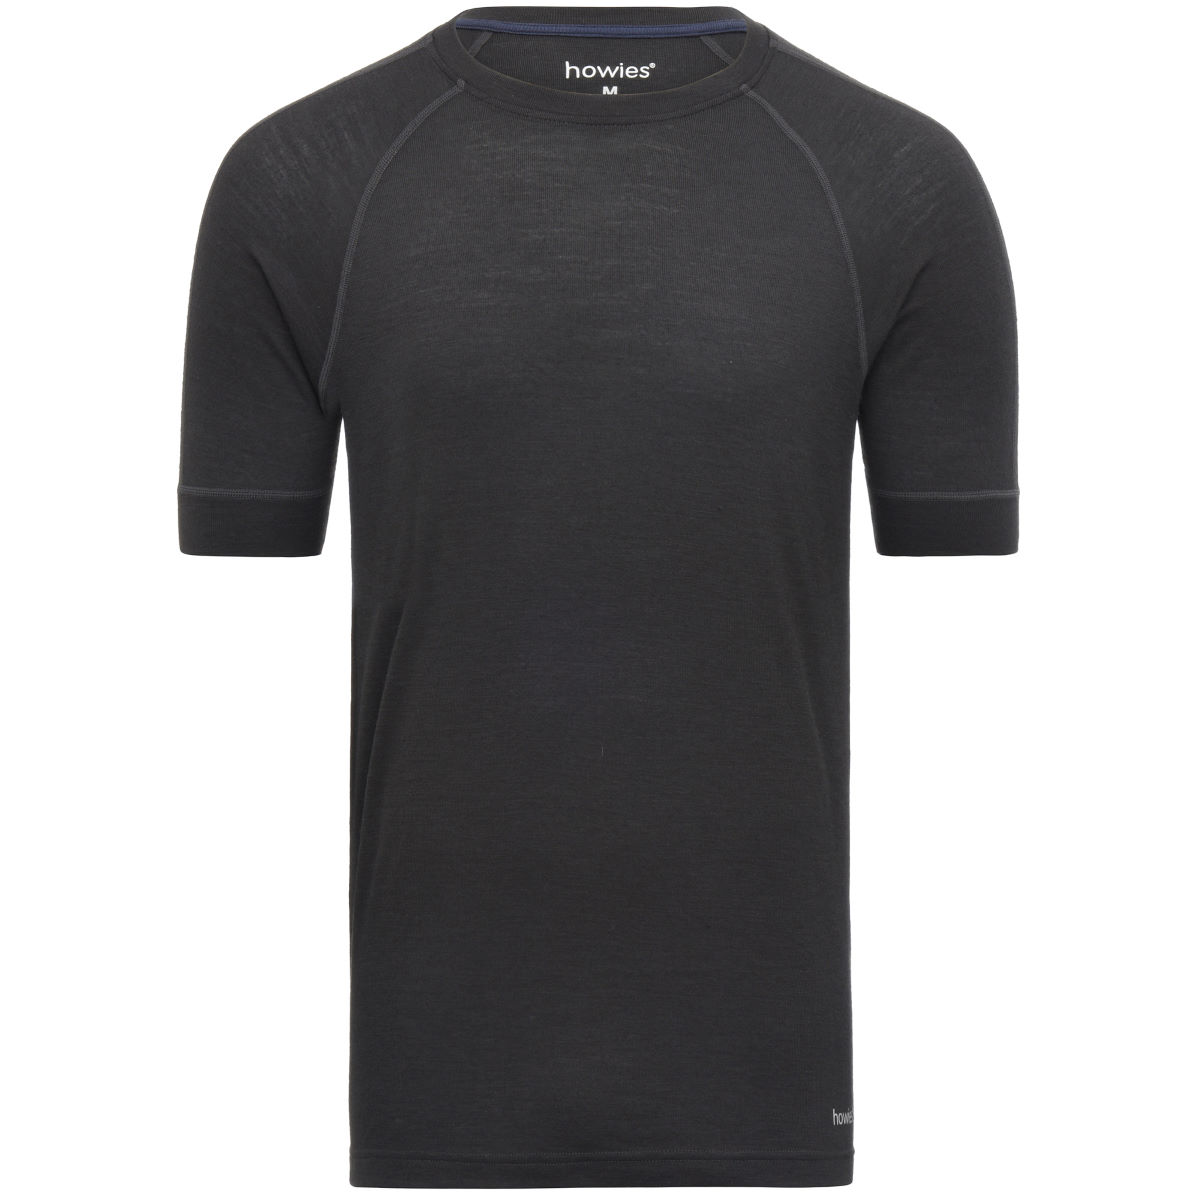 Maillot de corps howies Merino (manches courtes) - L Pirate Black